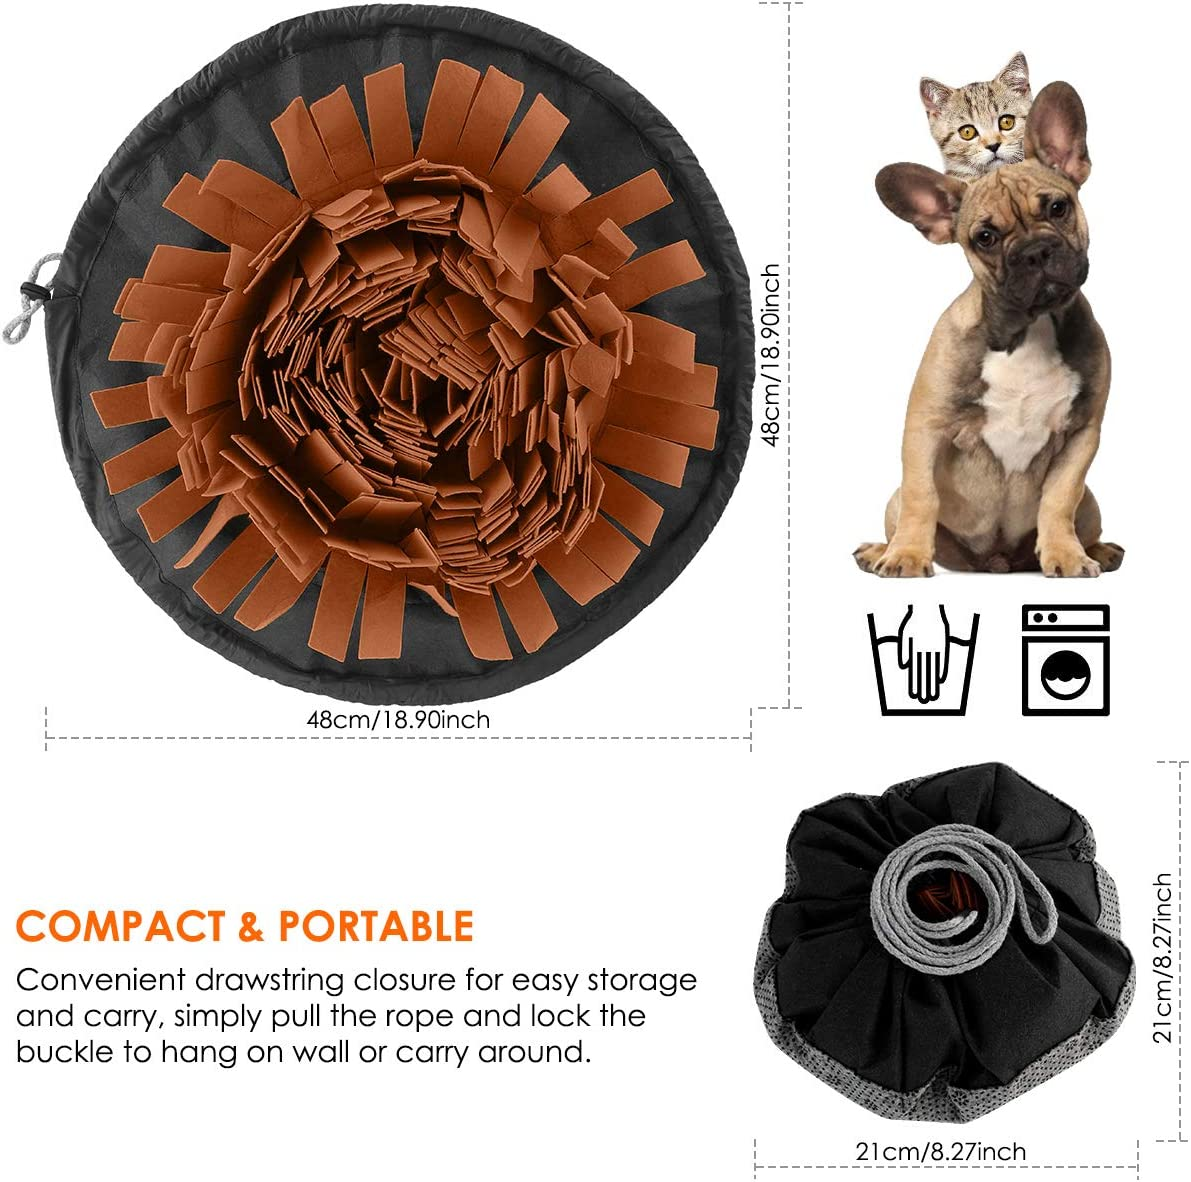 Pet Snuffle Mat Dog Slow Feeding Mat Washable Pet Puzzle Toys Durable Interactive Dog Toys Encourages Natural Foraging Skills for Small to Large Dogs Puppy